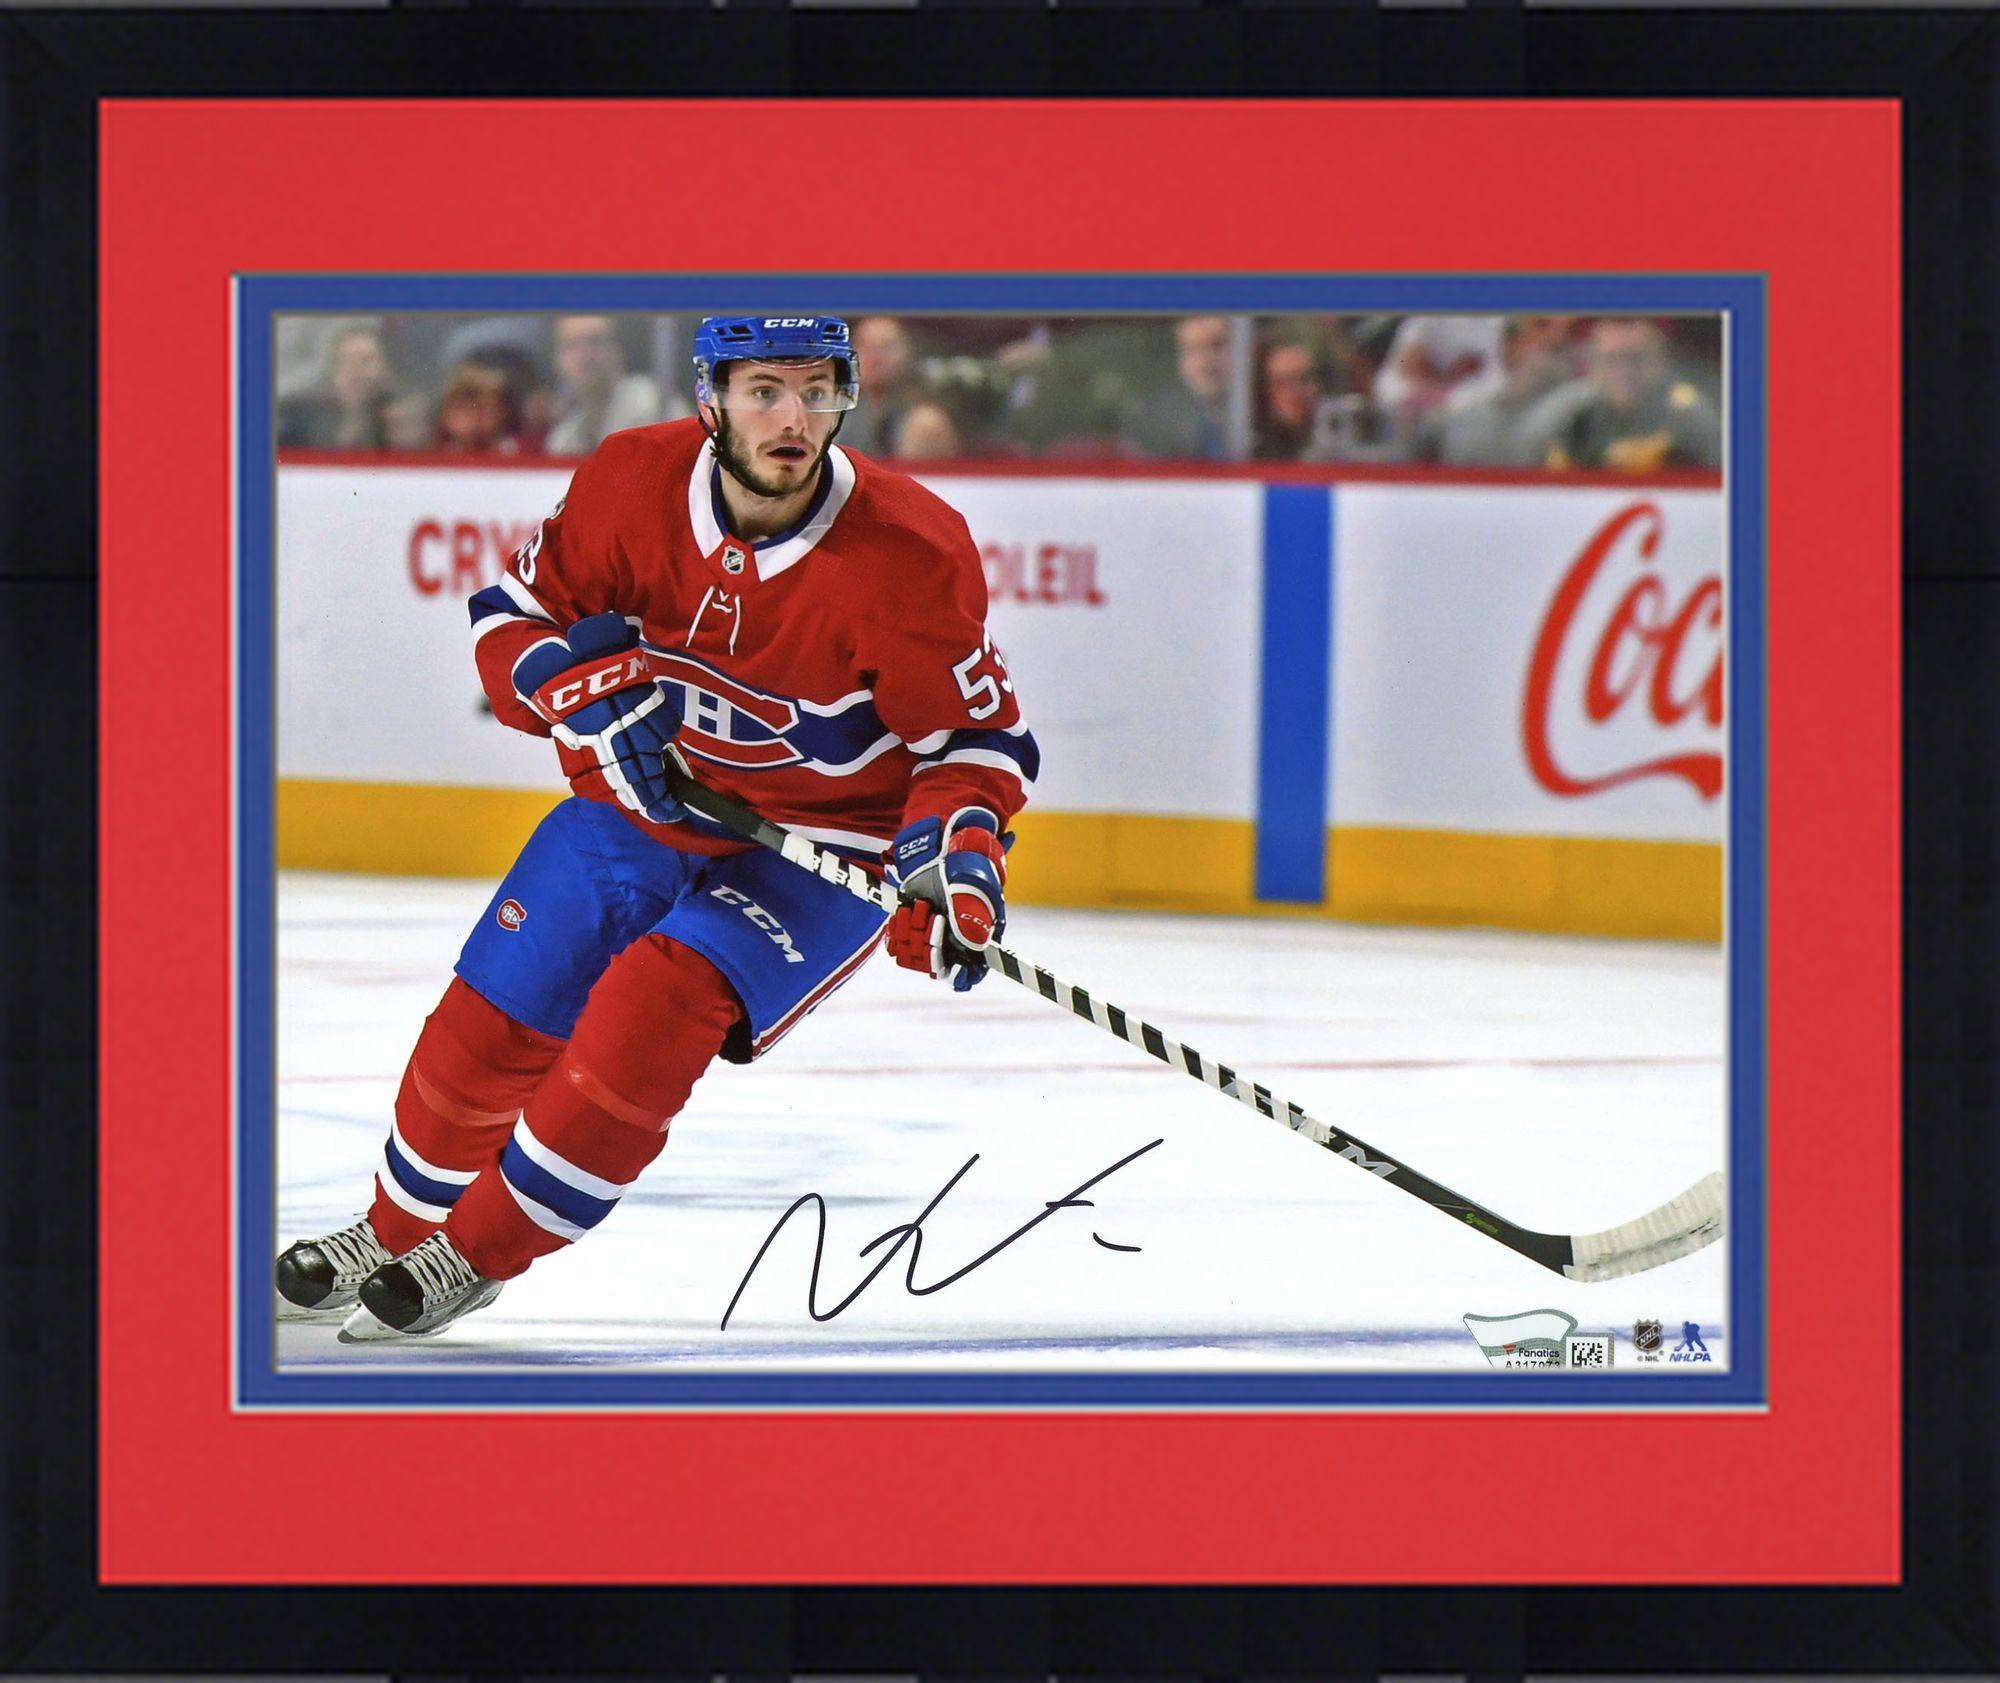 "Framed Victor Mete Montreal Canadiens Autographed 8"" x 10"" Red Jersey Skating Photograph Fanatics Authentic... by Fanatics Authentic"